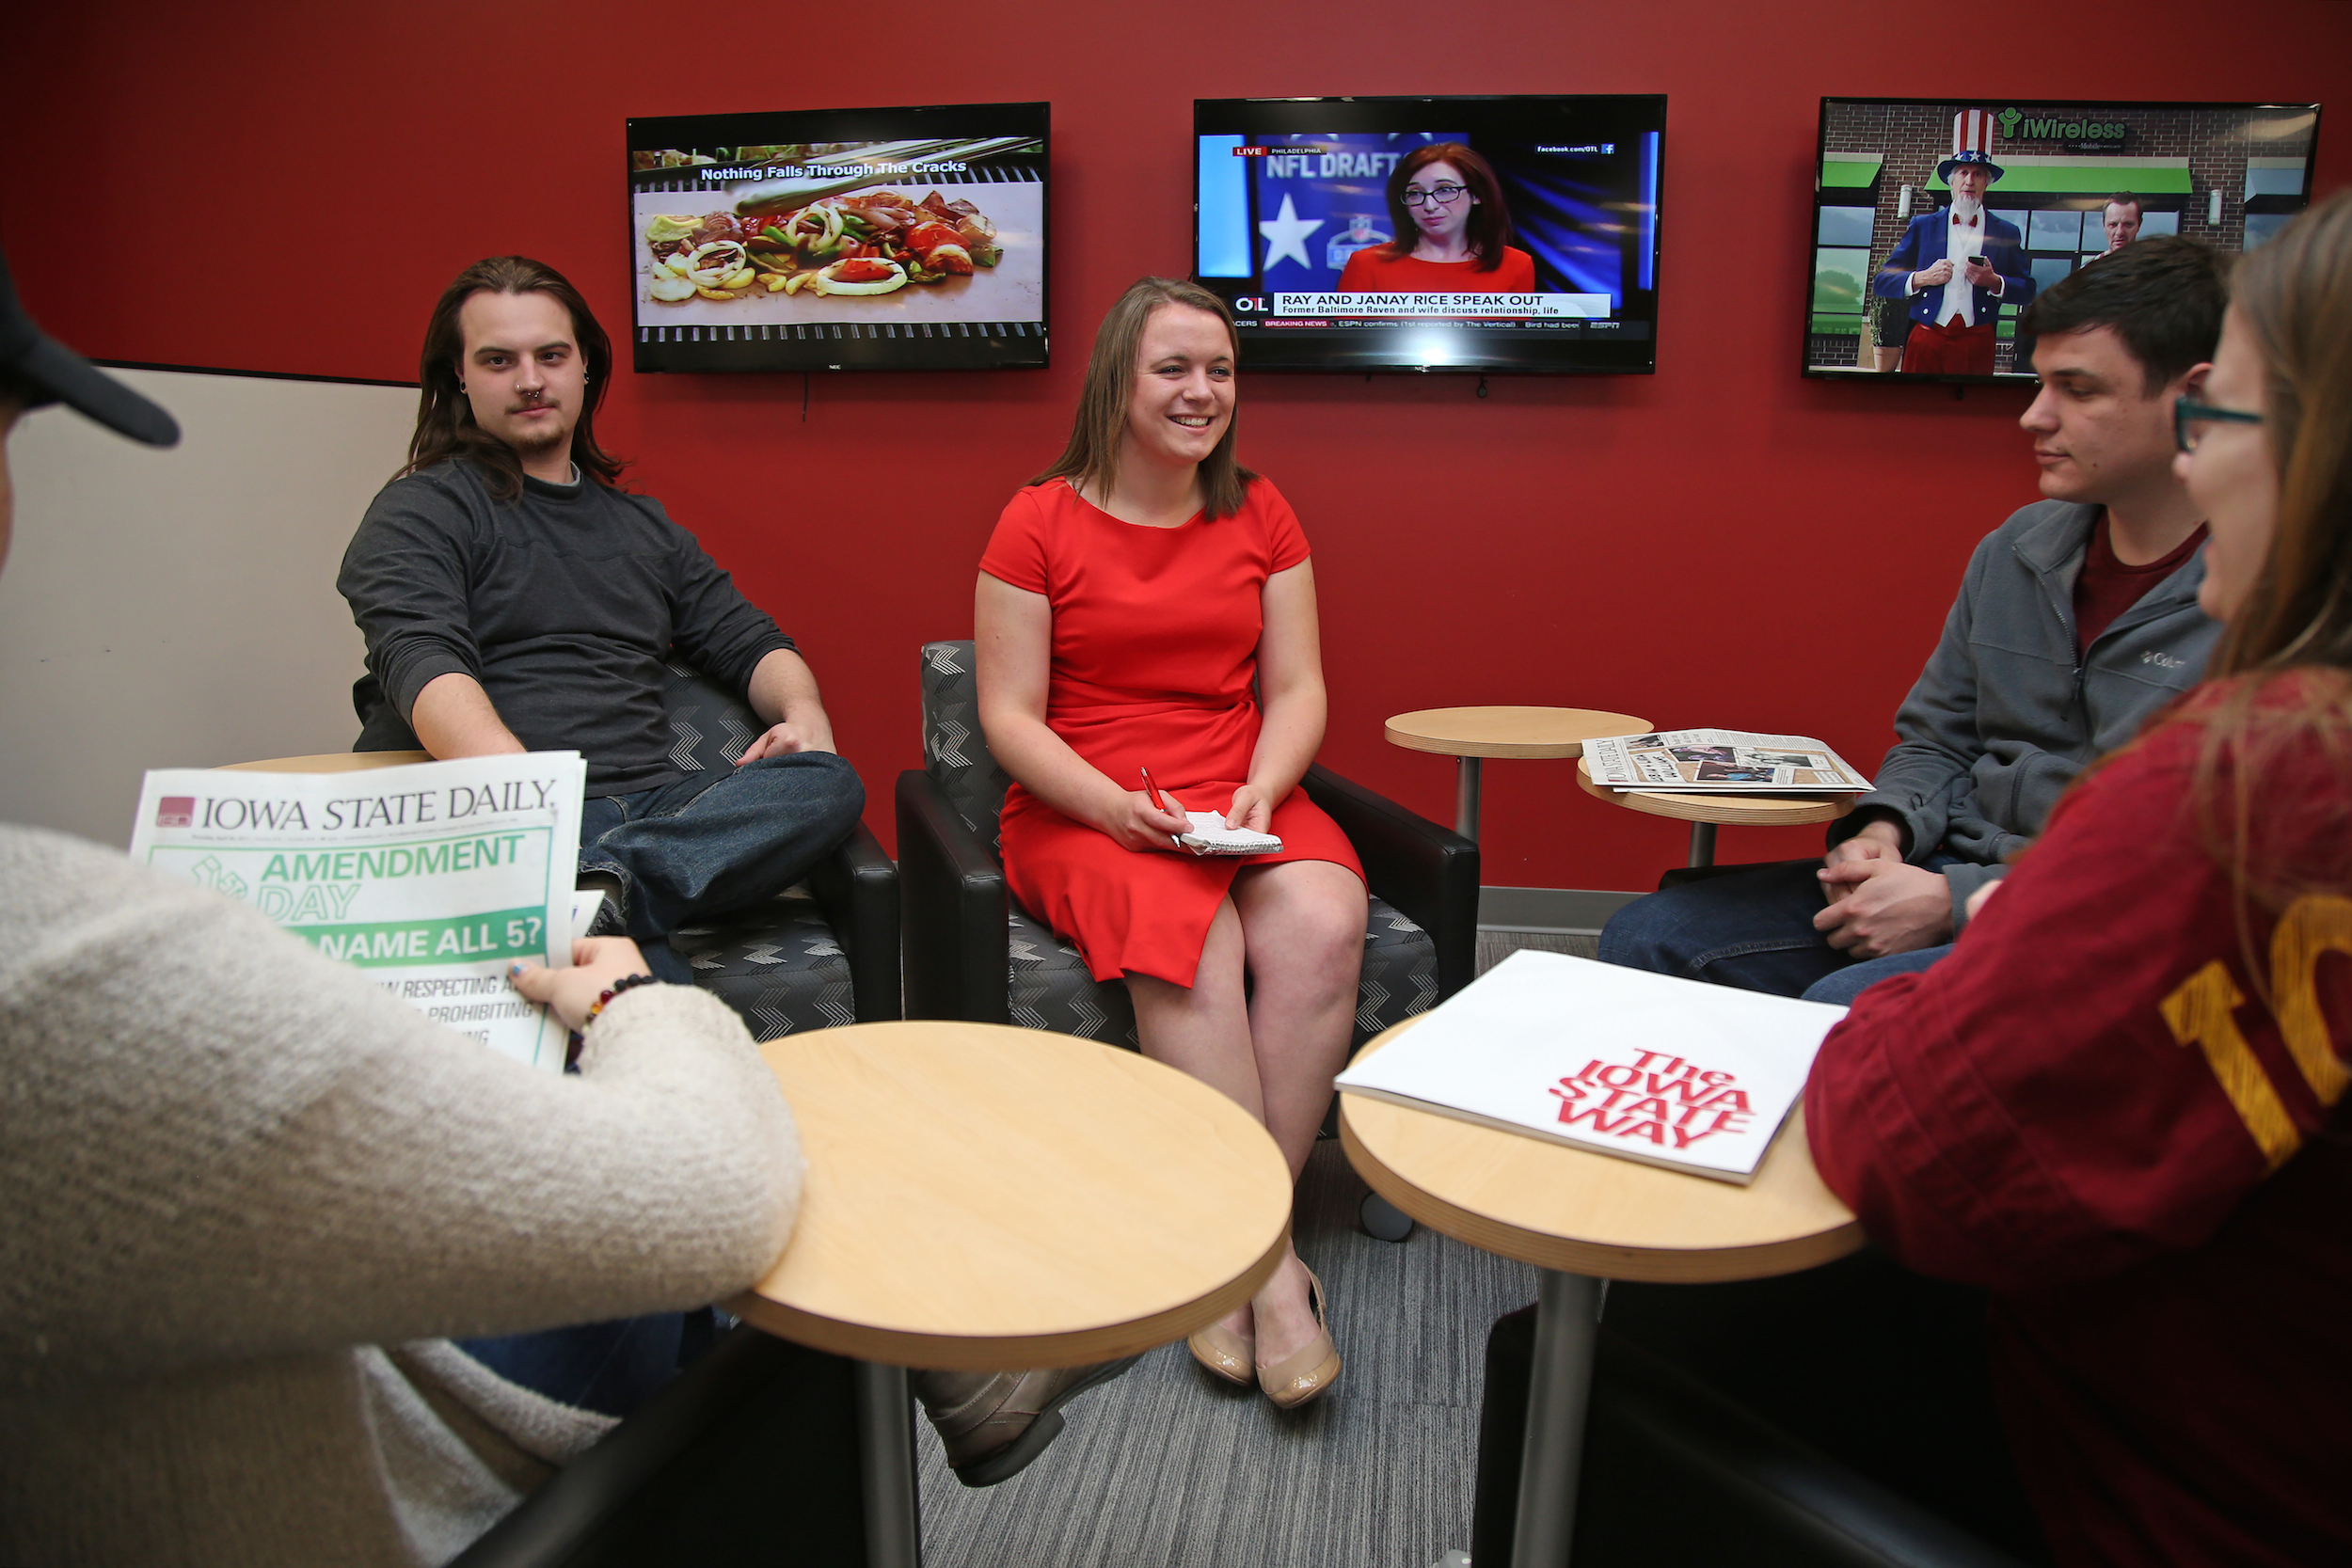 Barske meets with some of her staff in the newsroom. (Blake Lanser/Iowa State University.)